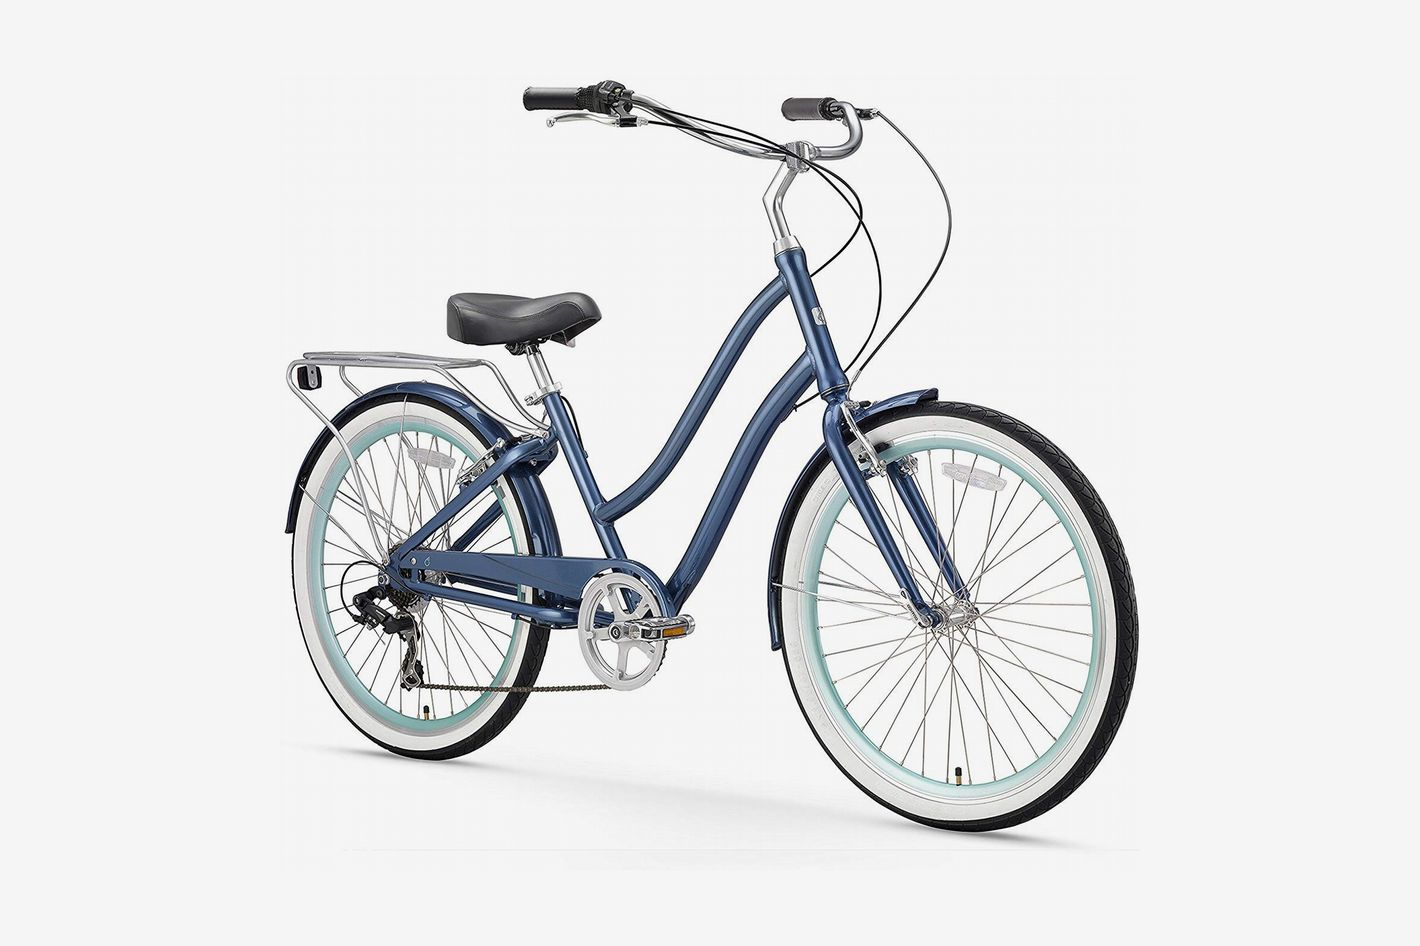 Sixthreezero EVRYjourney Women's Step-Through Hybrid Cruiser Bicycle